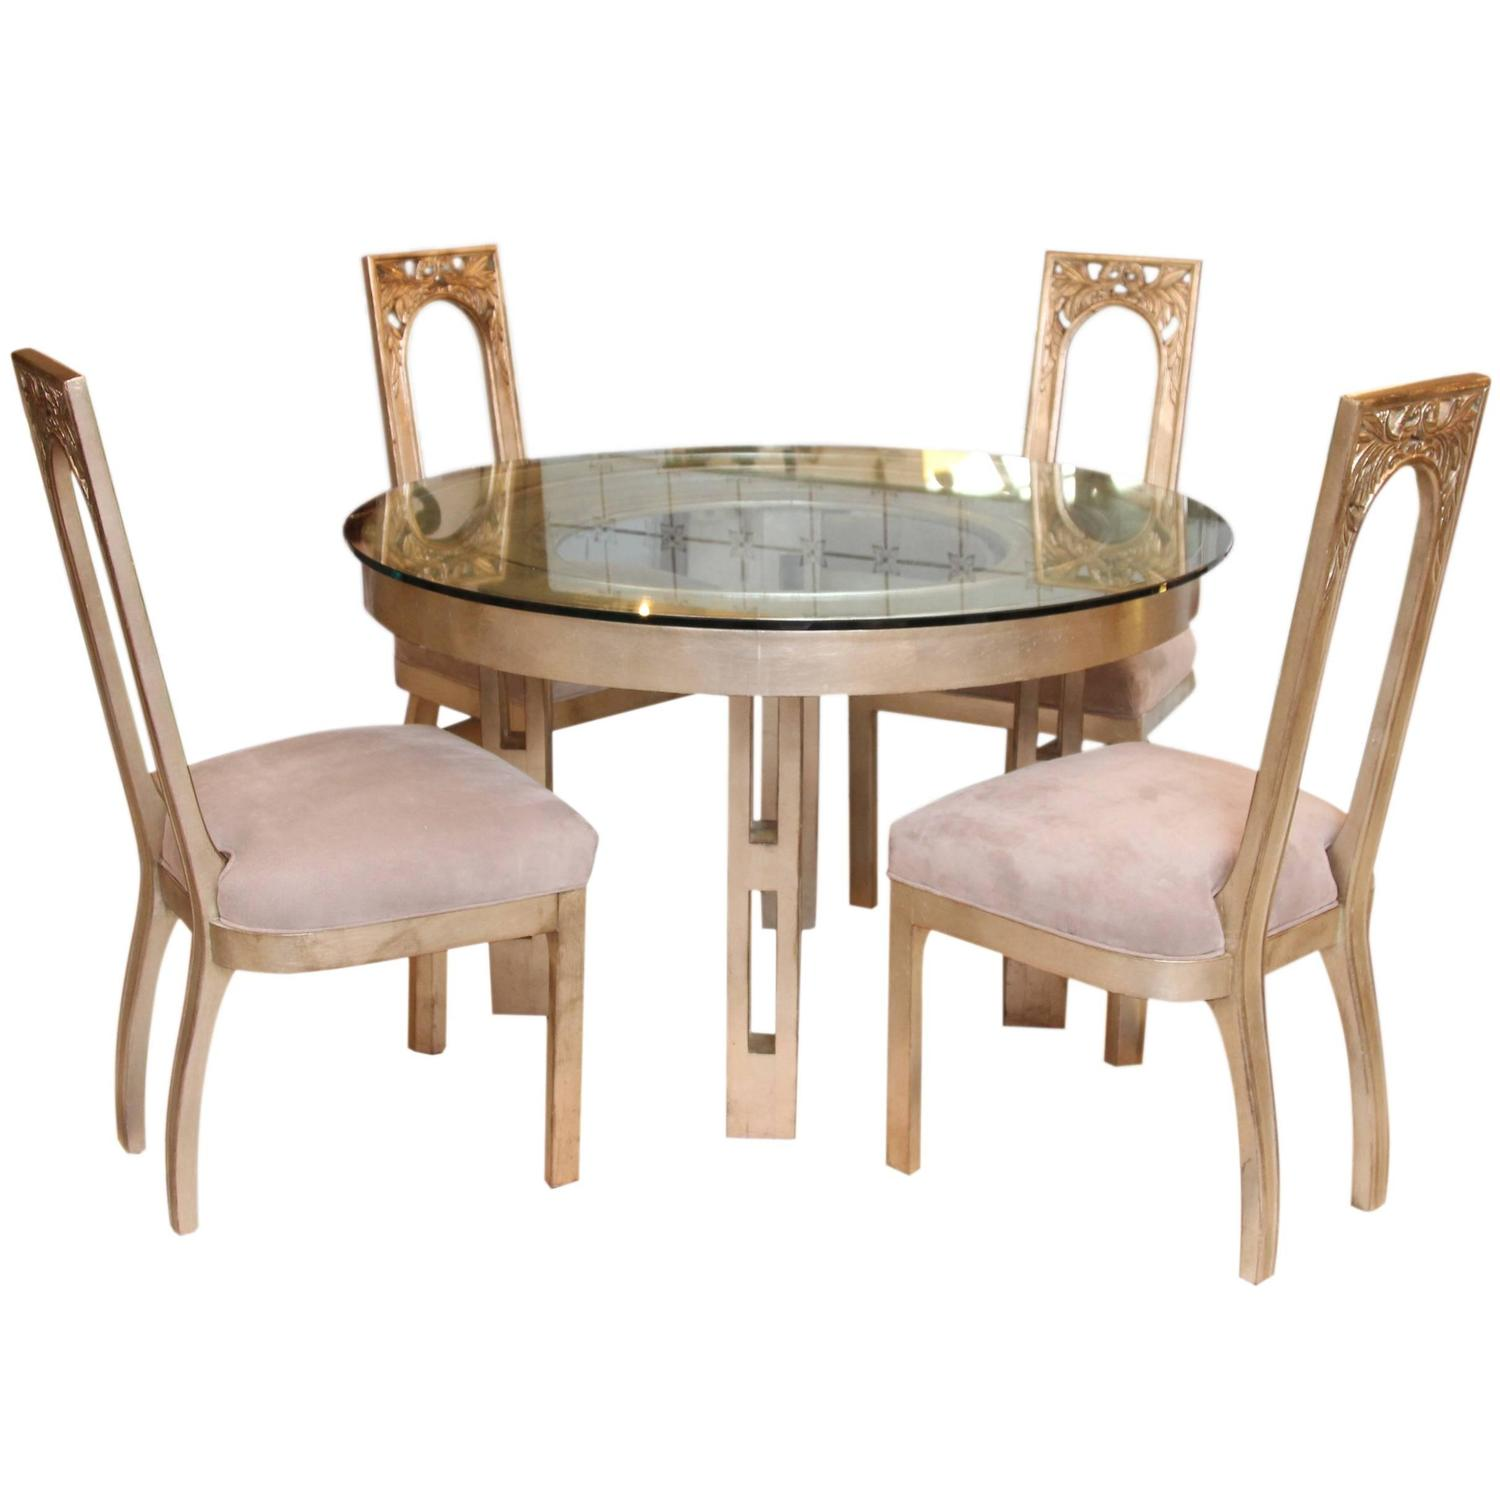 four chair dining set high floor mat 1960s glazed silver leaf round table and